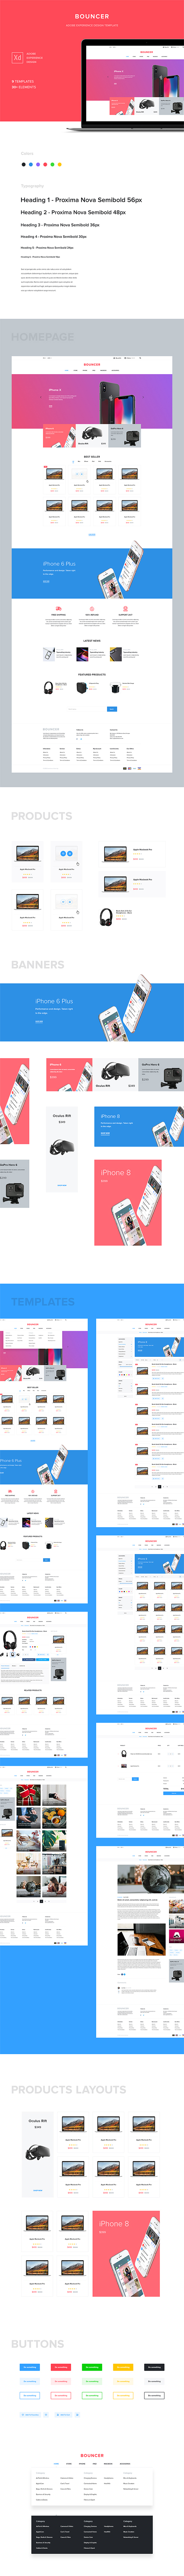 Freebie : Creative Ecommerce UI Kit For Designers (Adobe XD)